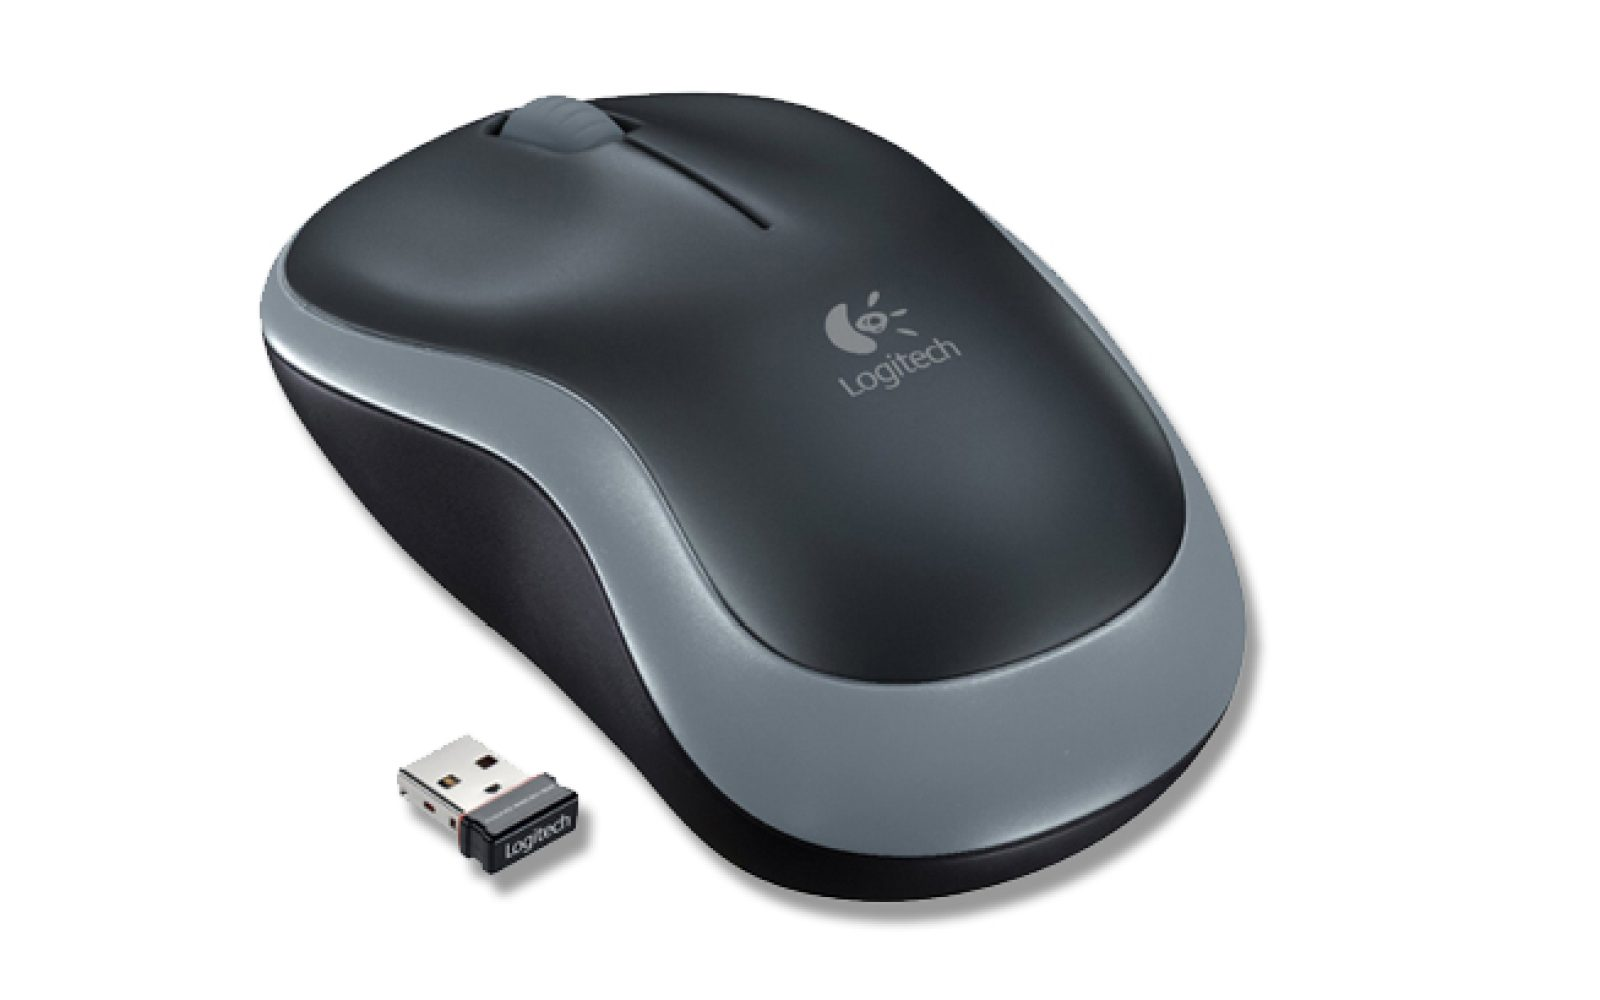 Logitech Wireless Mouse Refurb for PC, Mac & Linux w/ Nano Receiver